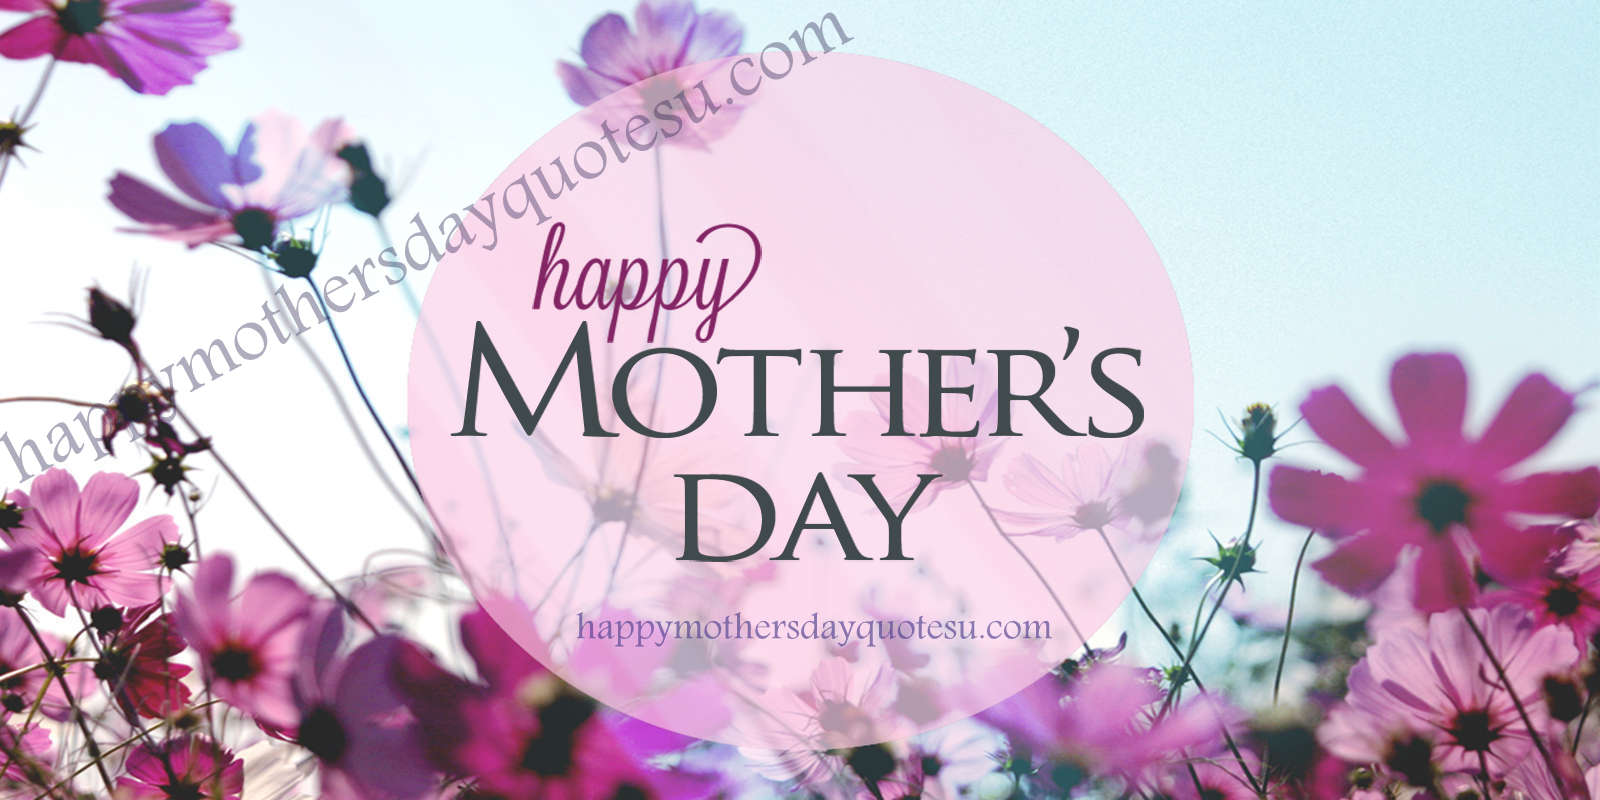 Friends Inspirational Mothers Day Quotes Club Receipts